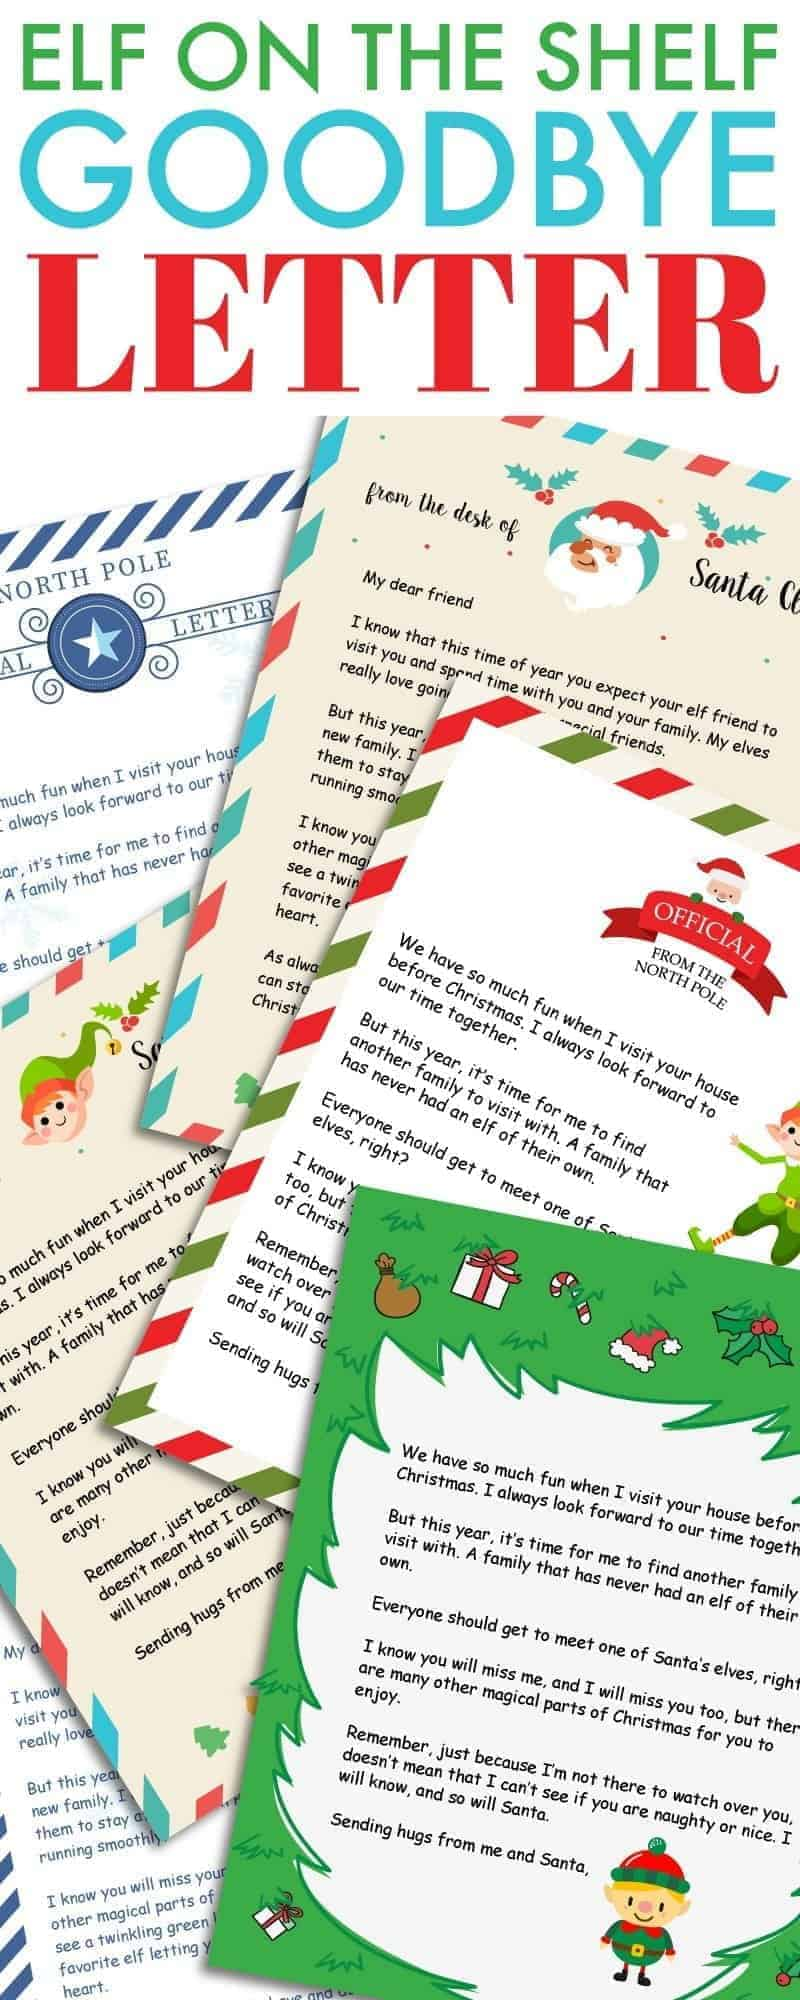 image relating to Printable Elf on the Shelf Goodbye Letter identify Elf upon the Shelf Goodbye Letter - Absolutely free Printable - 730 Sage